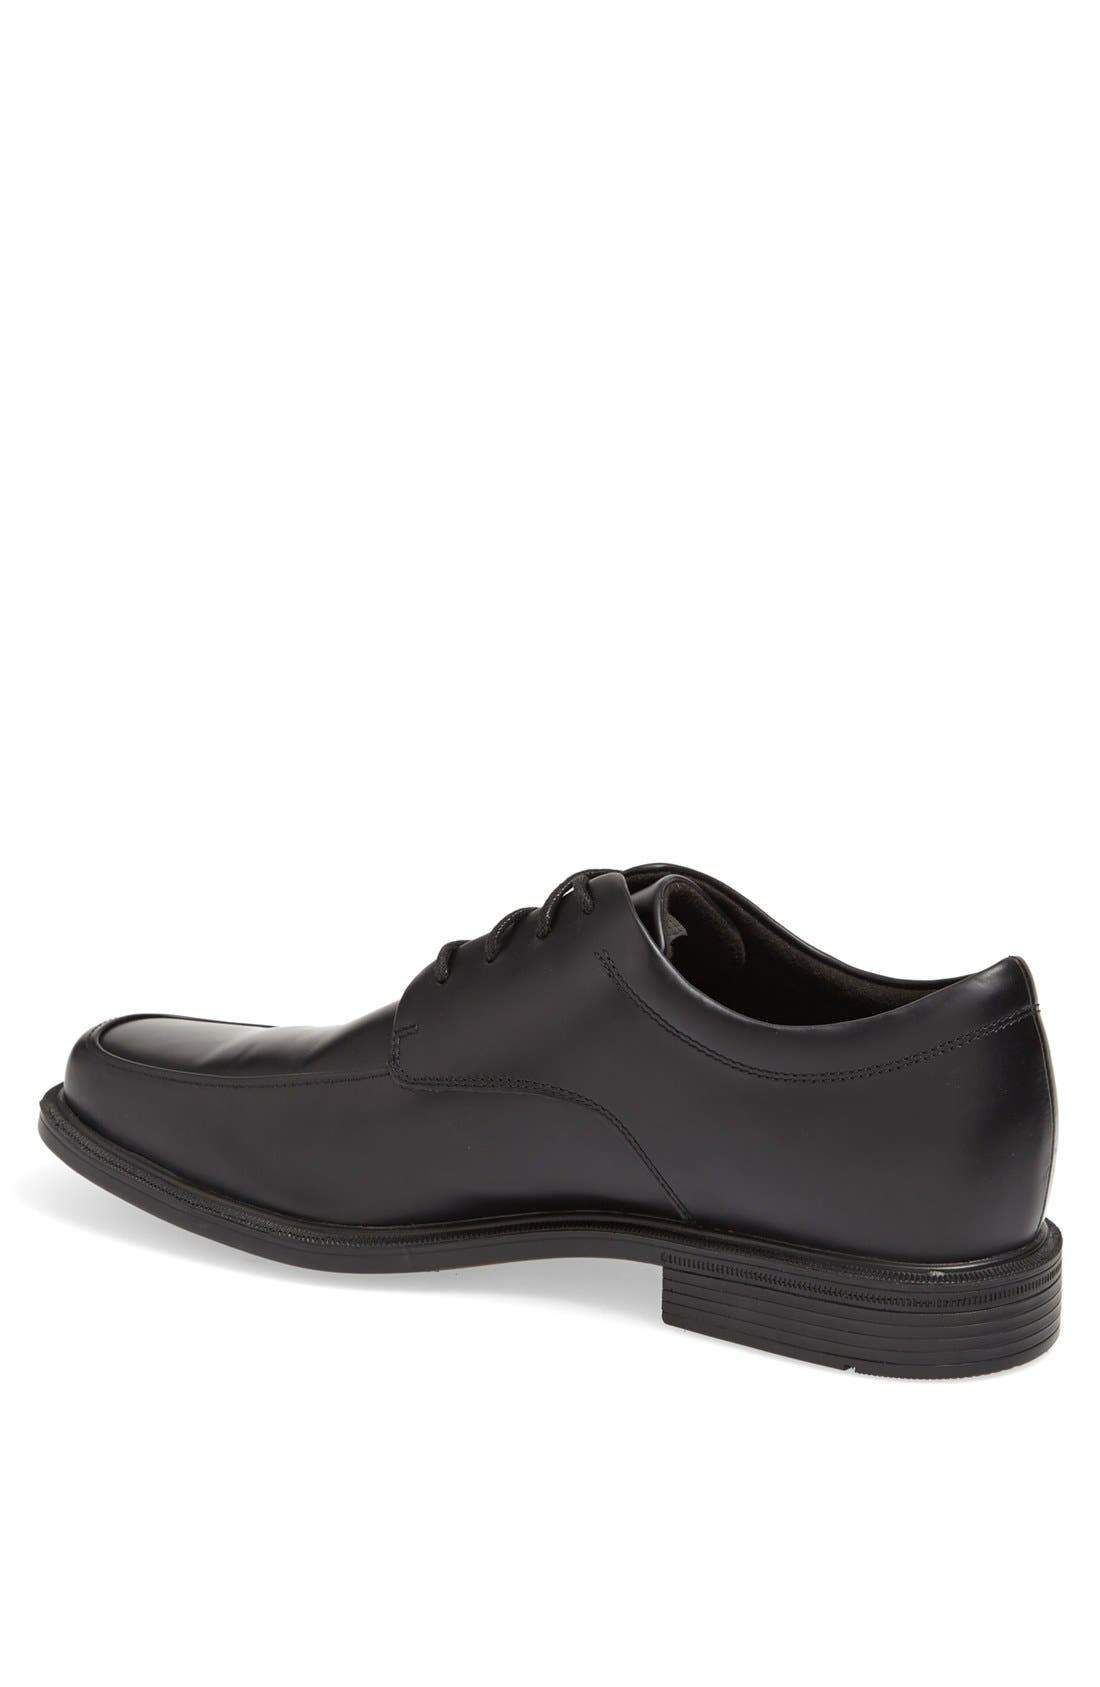 Alternate Image 2  - Rockport 'Evander' Oxford